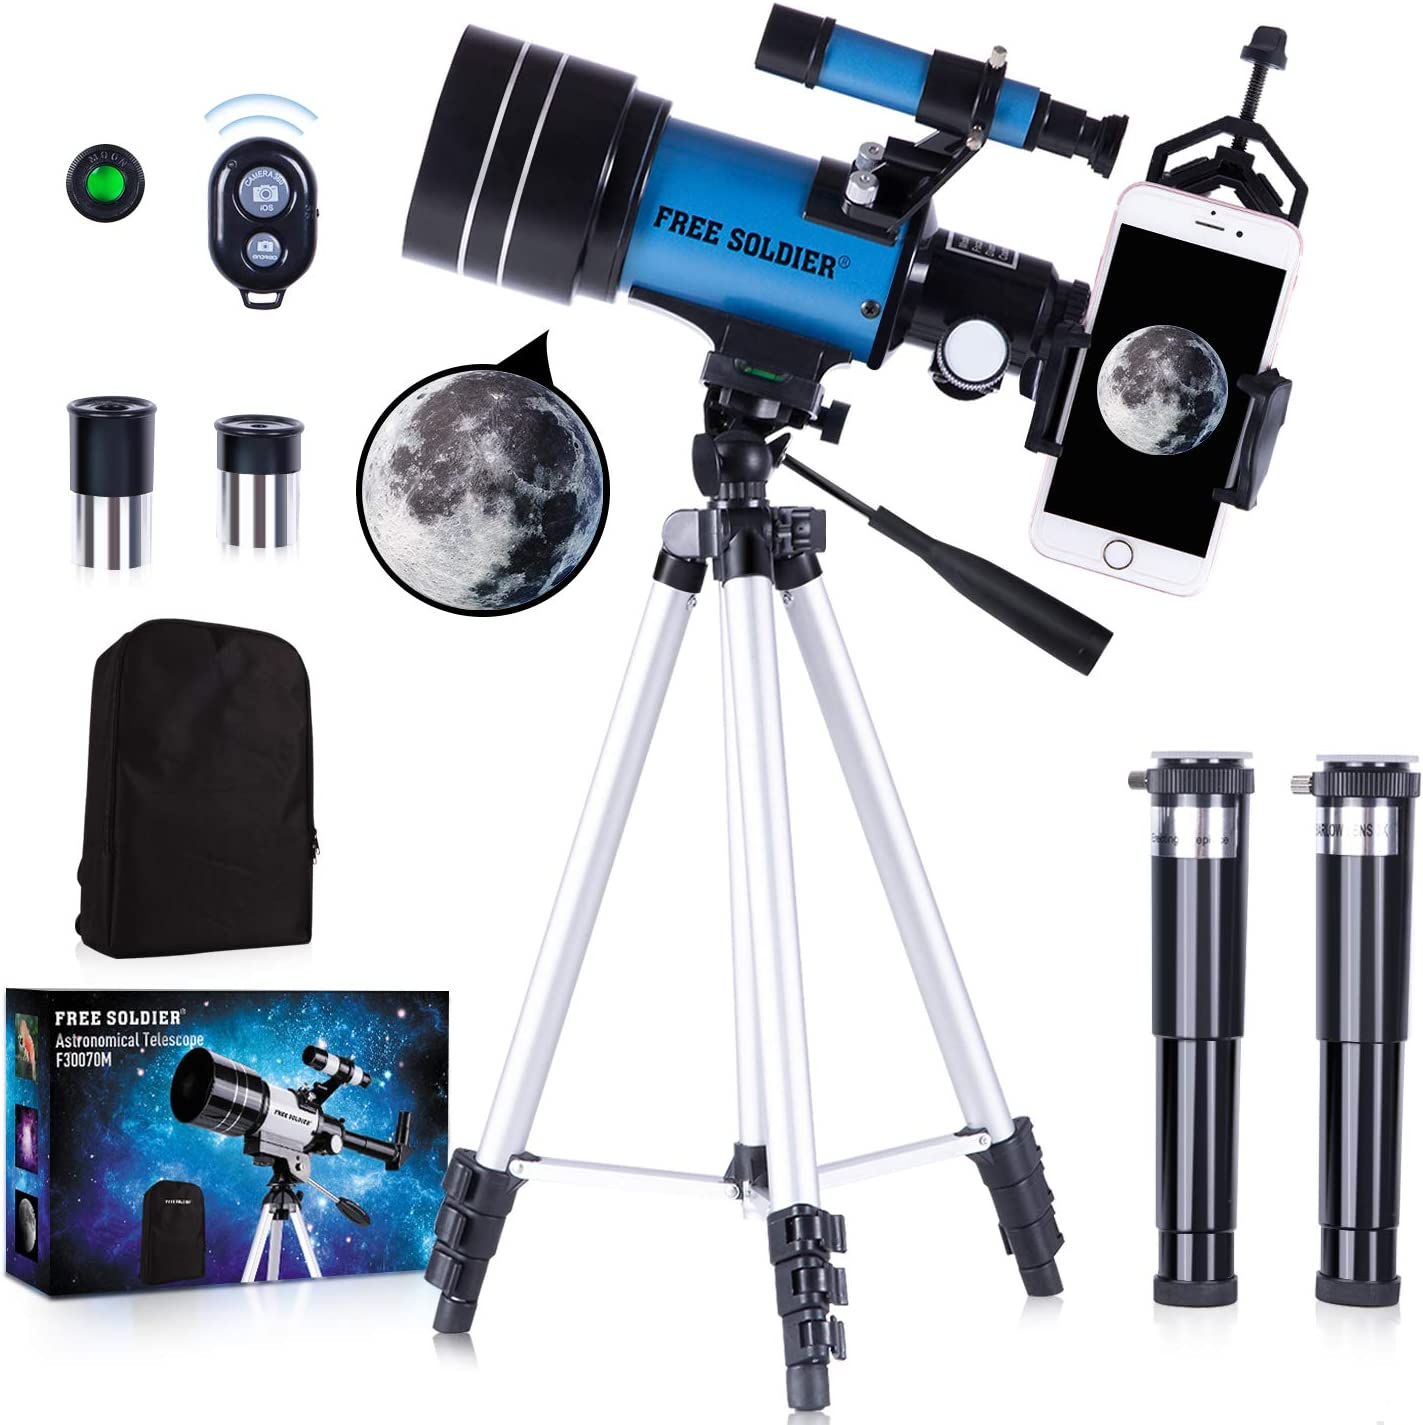 FREE SOLDIER Telescope for Kids&Astronomy Beginners - 70mm Aperture Refractor Telescope for Stargazing With Adjustable Tripod Phone Adapter Wireless Remote Perfect Travel Telescope Gift for Kids, Blue